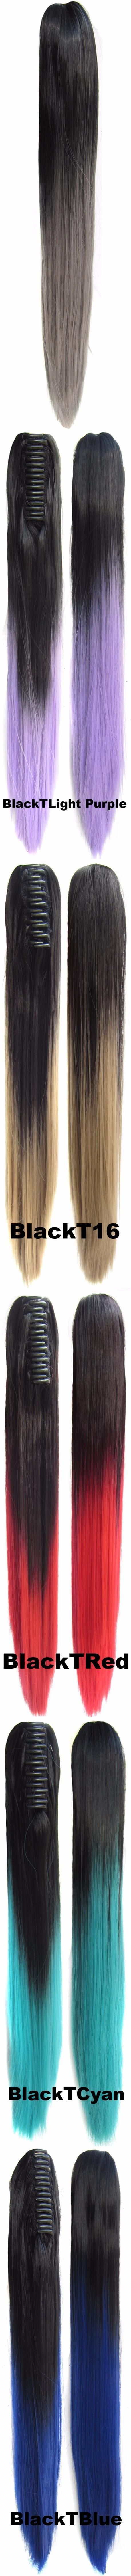 Qqxcaiw women long straight two tone black to red blonde ombre